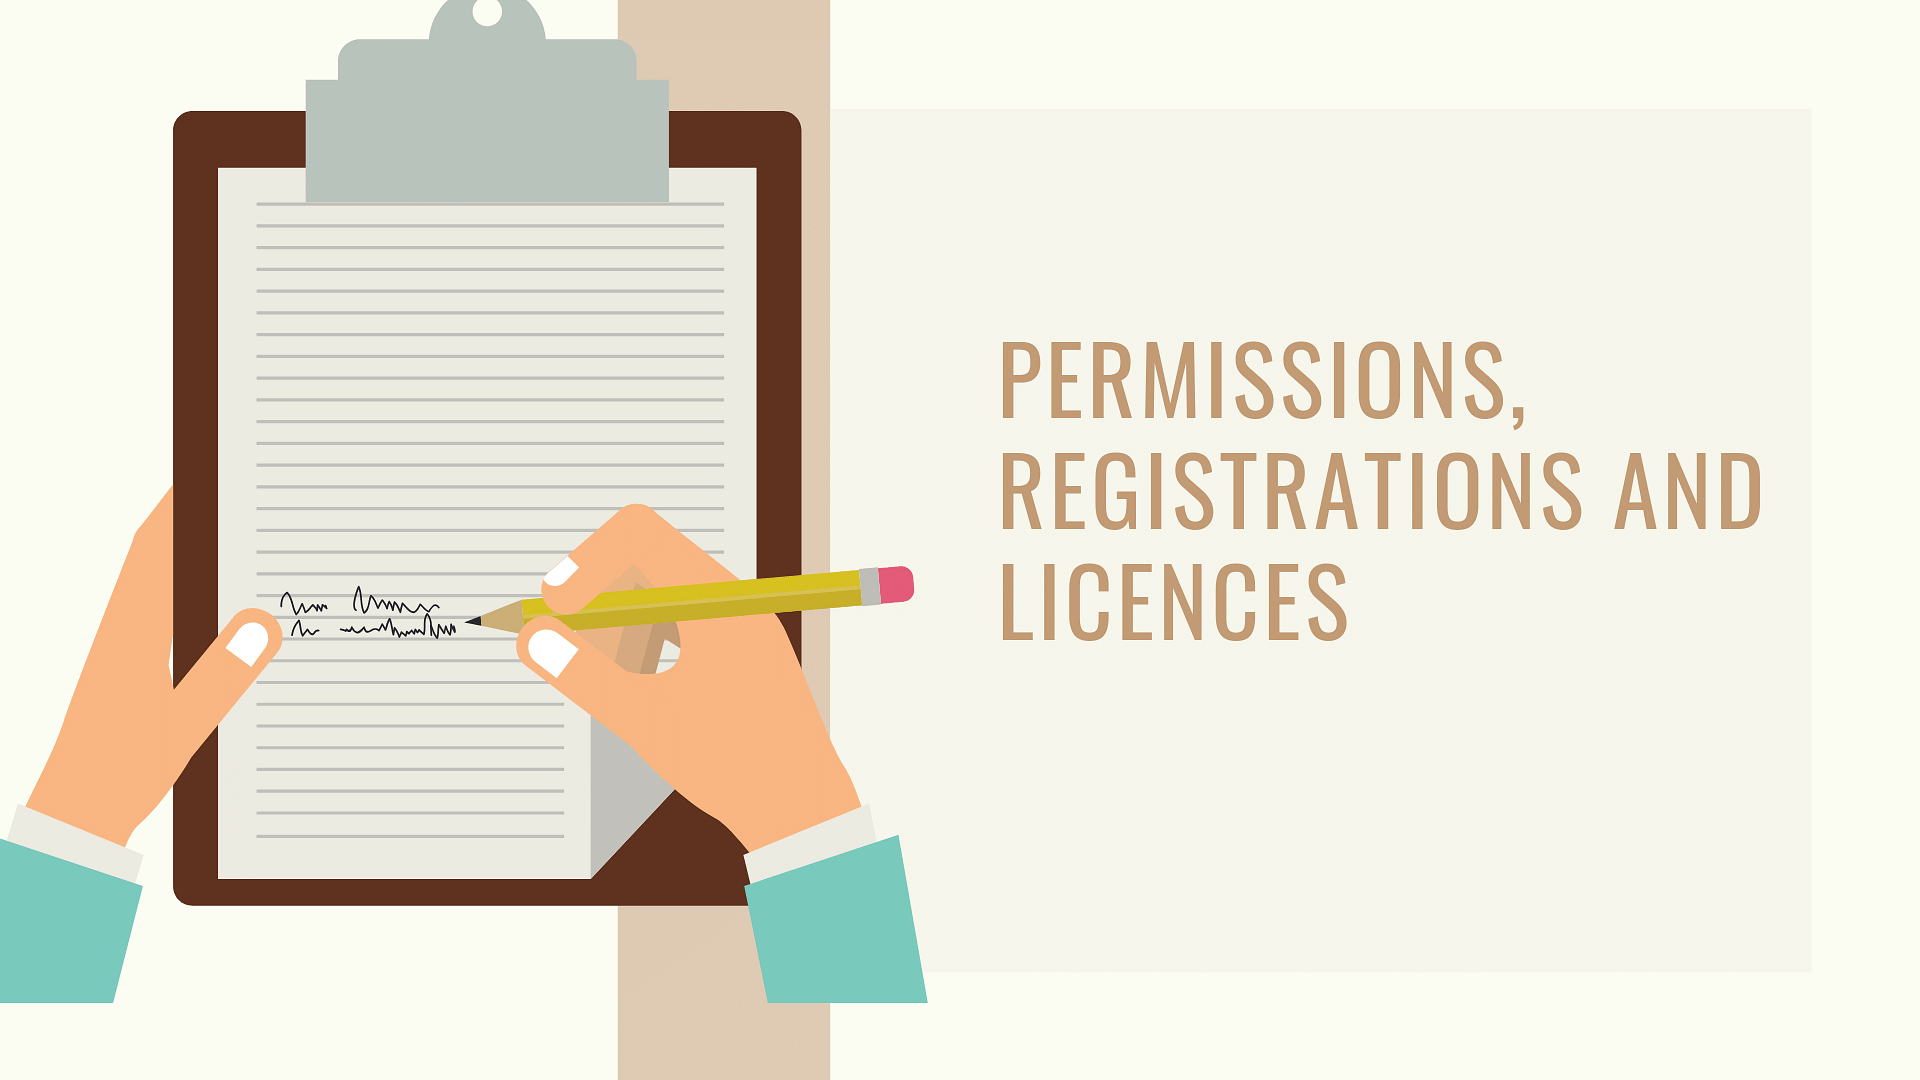 Which permissions, registrations and licences one require for business?